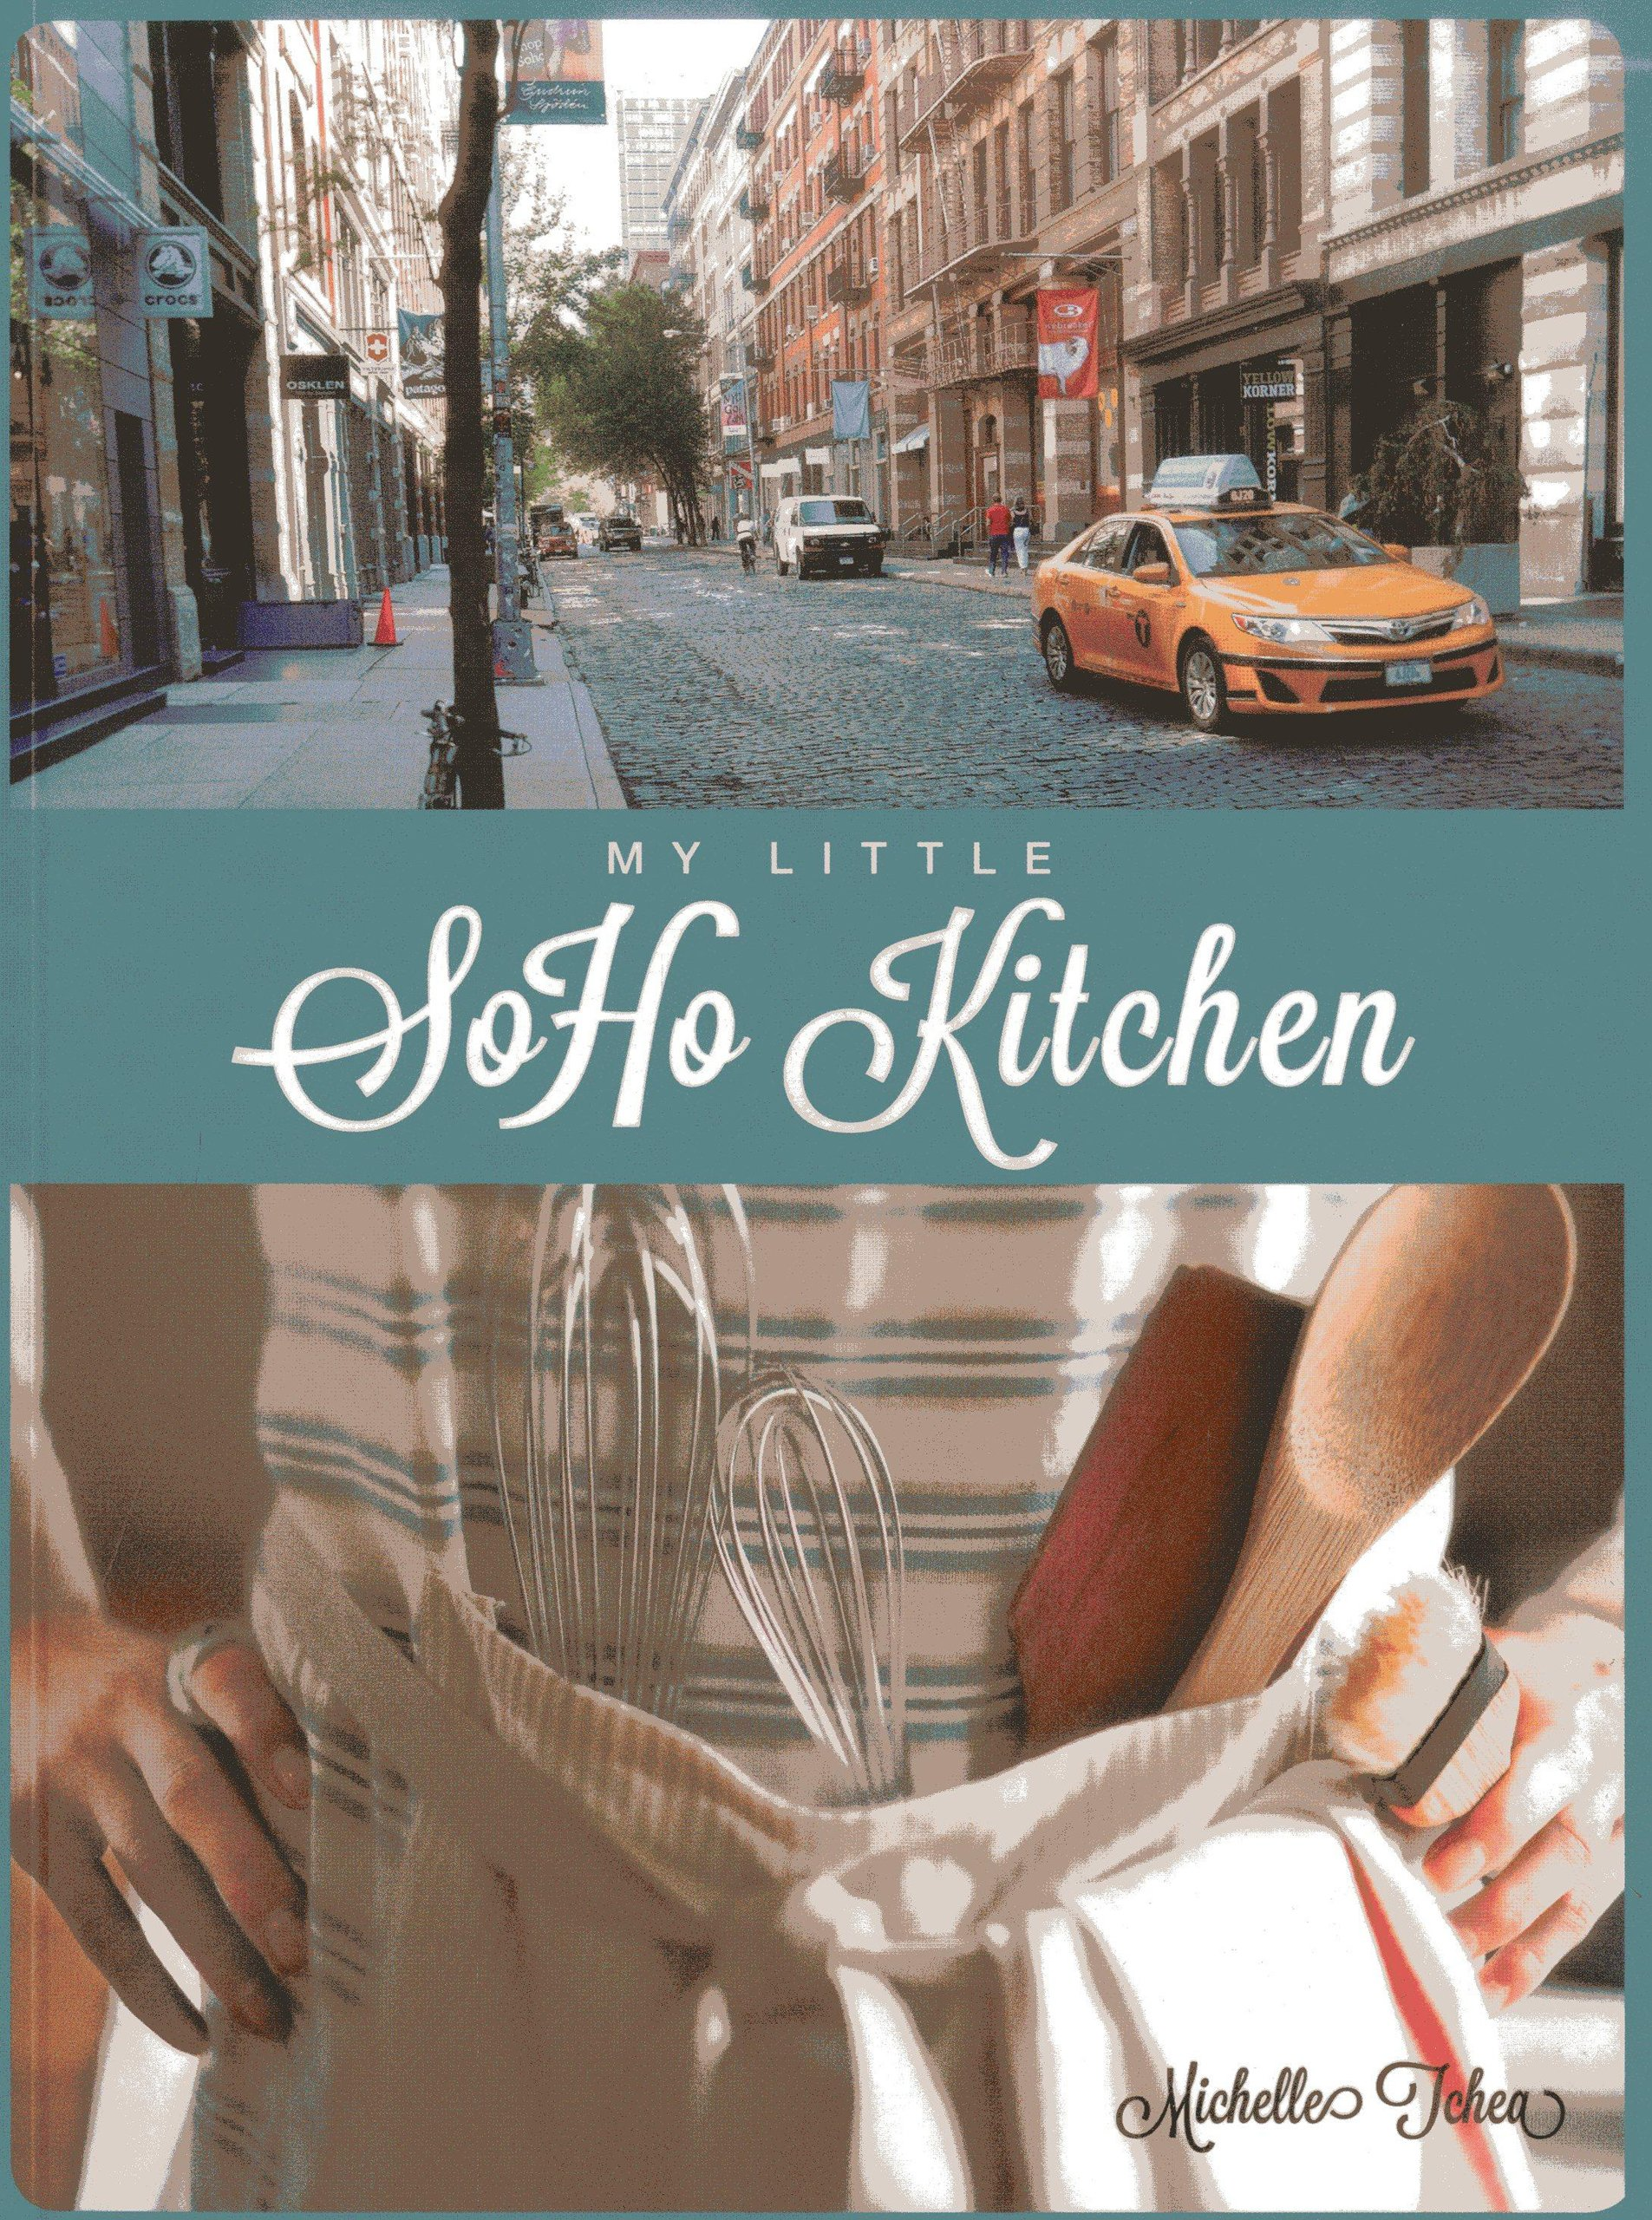 Buy My Little Soho Kitchen Book Online at Low Prices in India | My ...